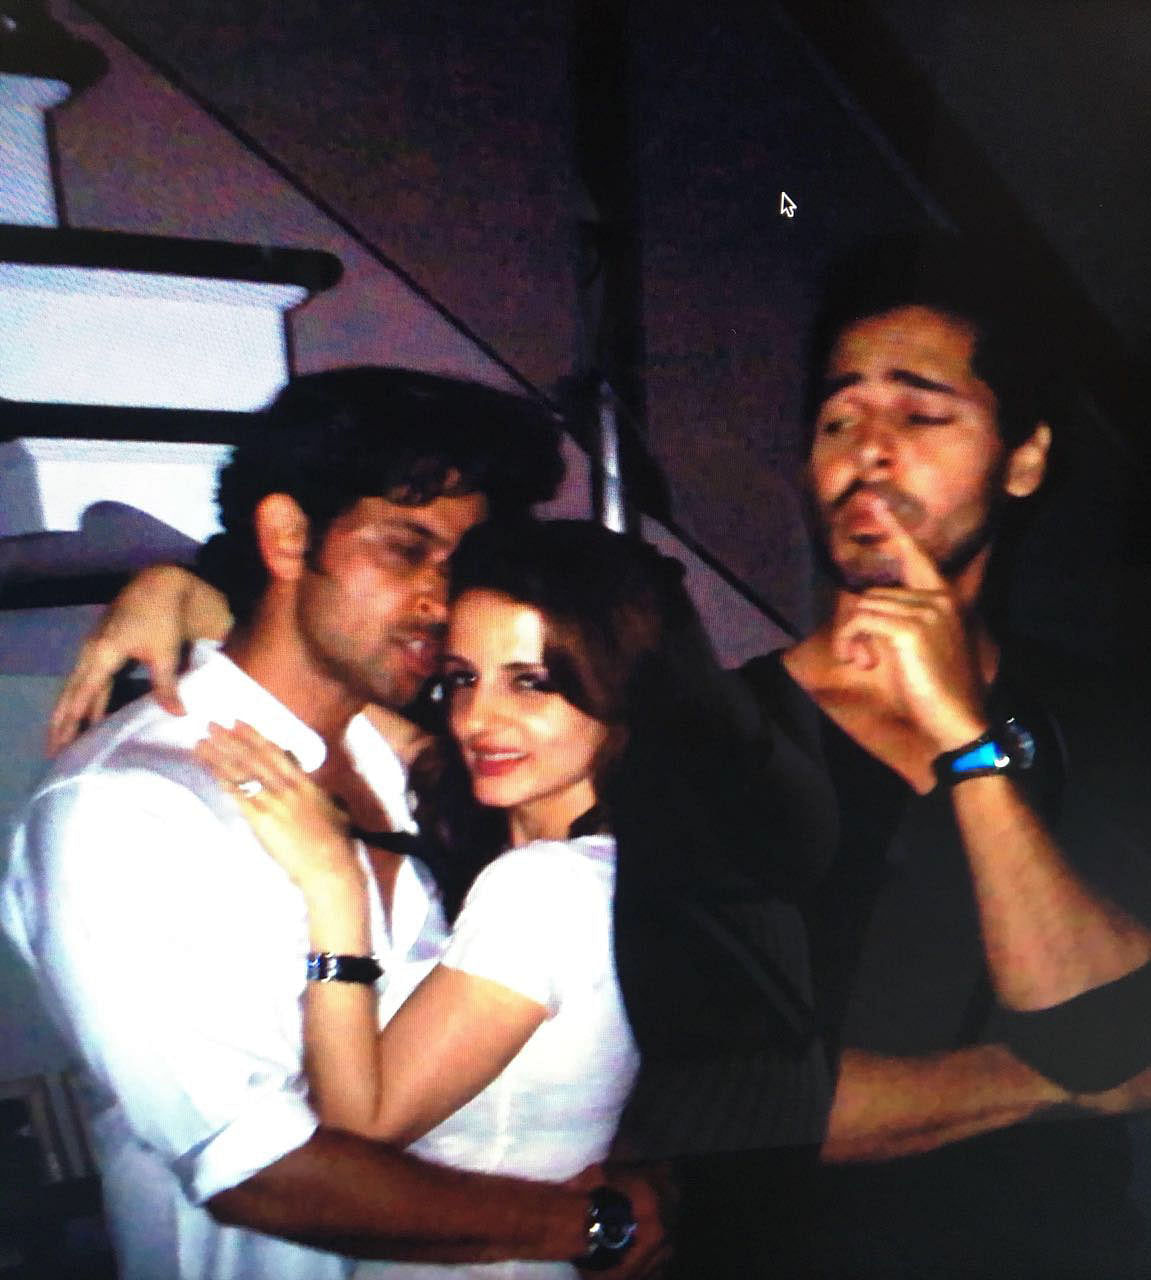 Hrithik Roshan posing with his ex-wife Sussanne Khan